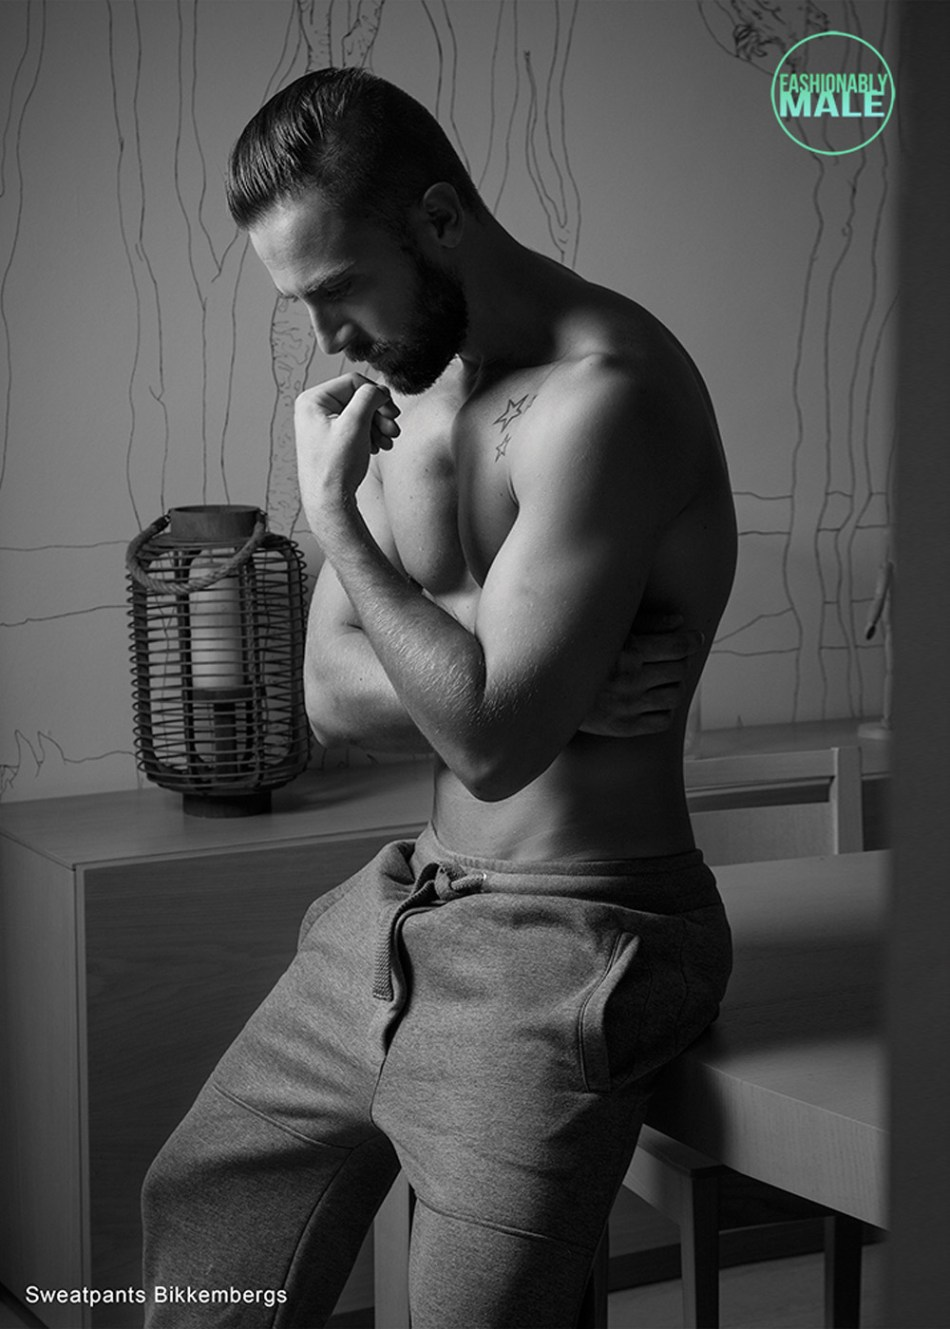 Steve Rogers by Alisson Marks for Fashionably Male3